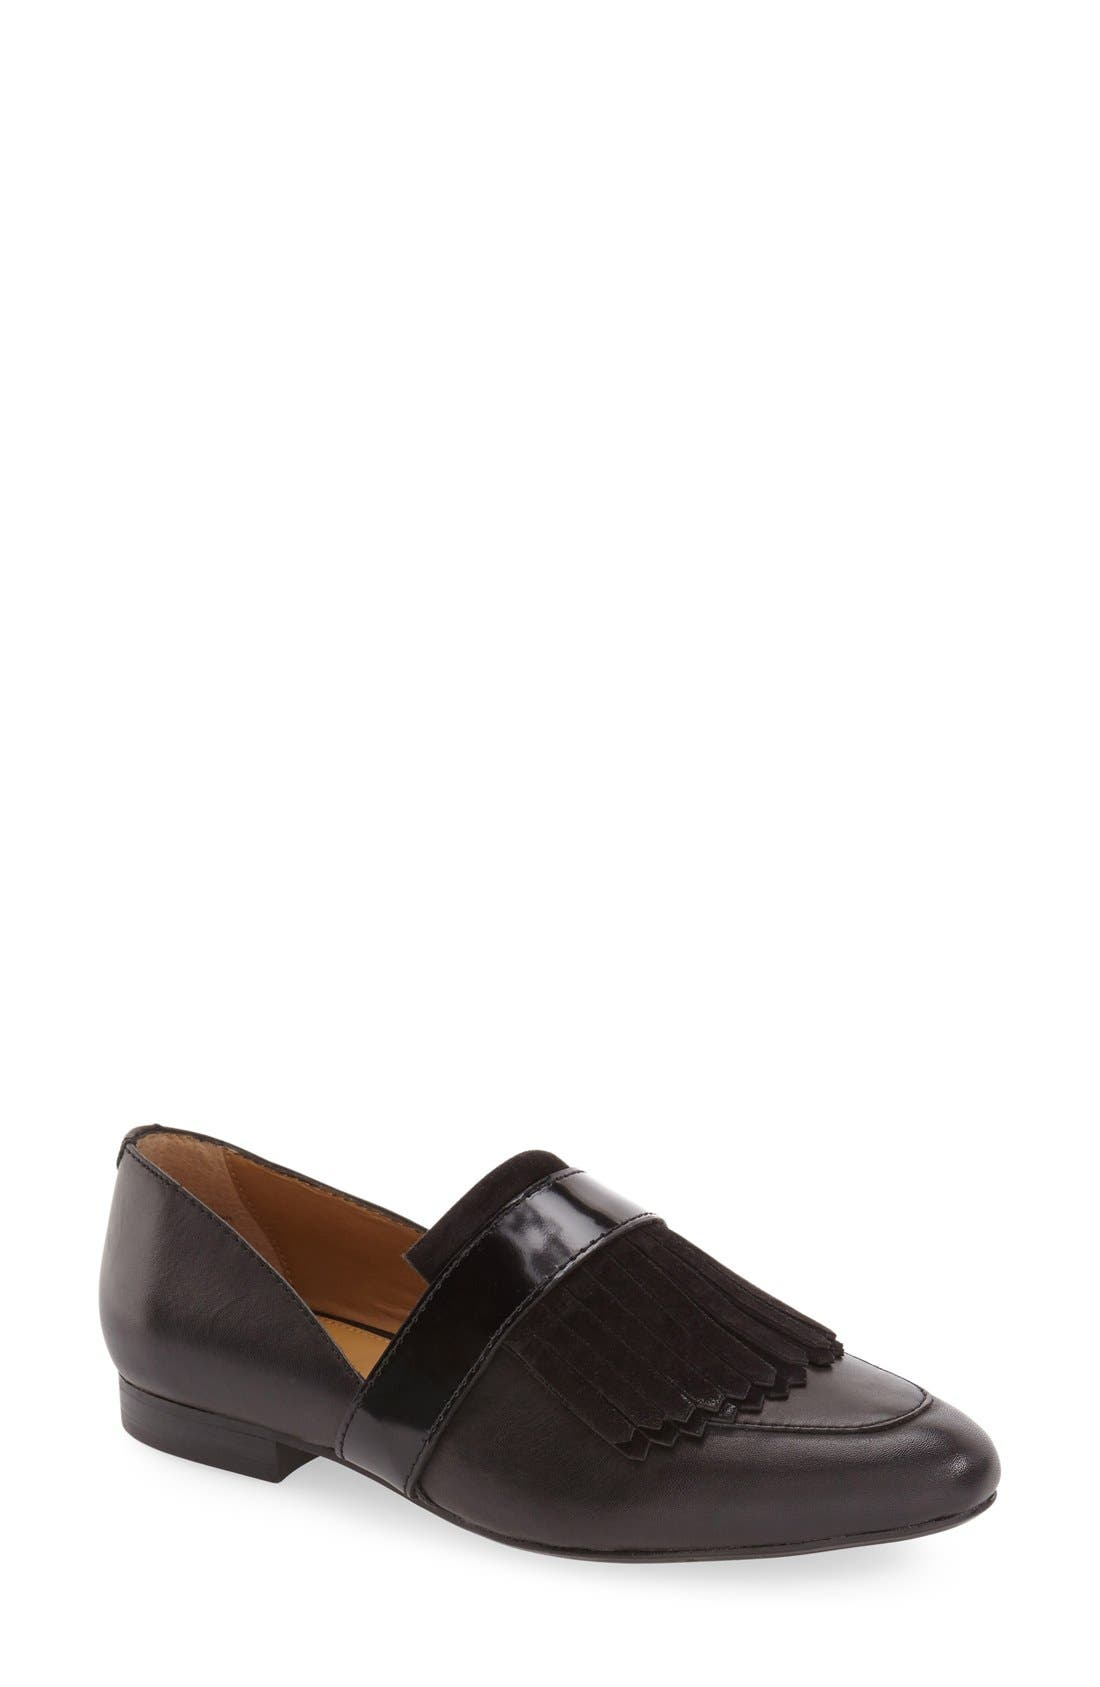 G.H. Bass & Co. 'Harlow' Kiltie Leather Loafer (Women)